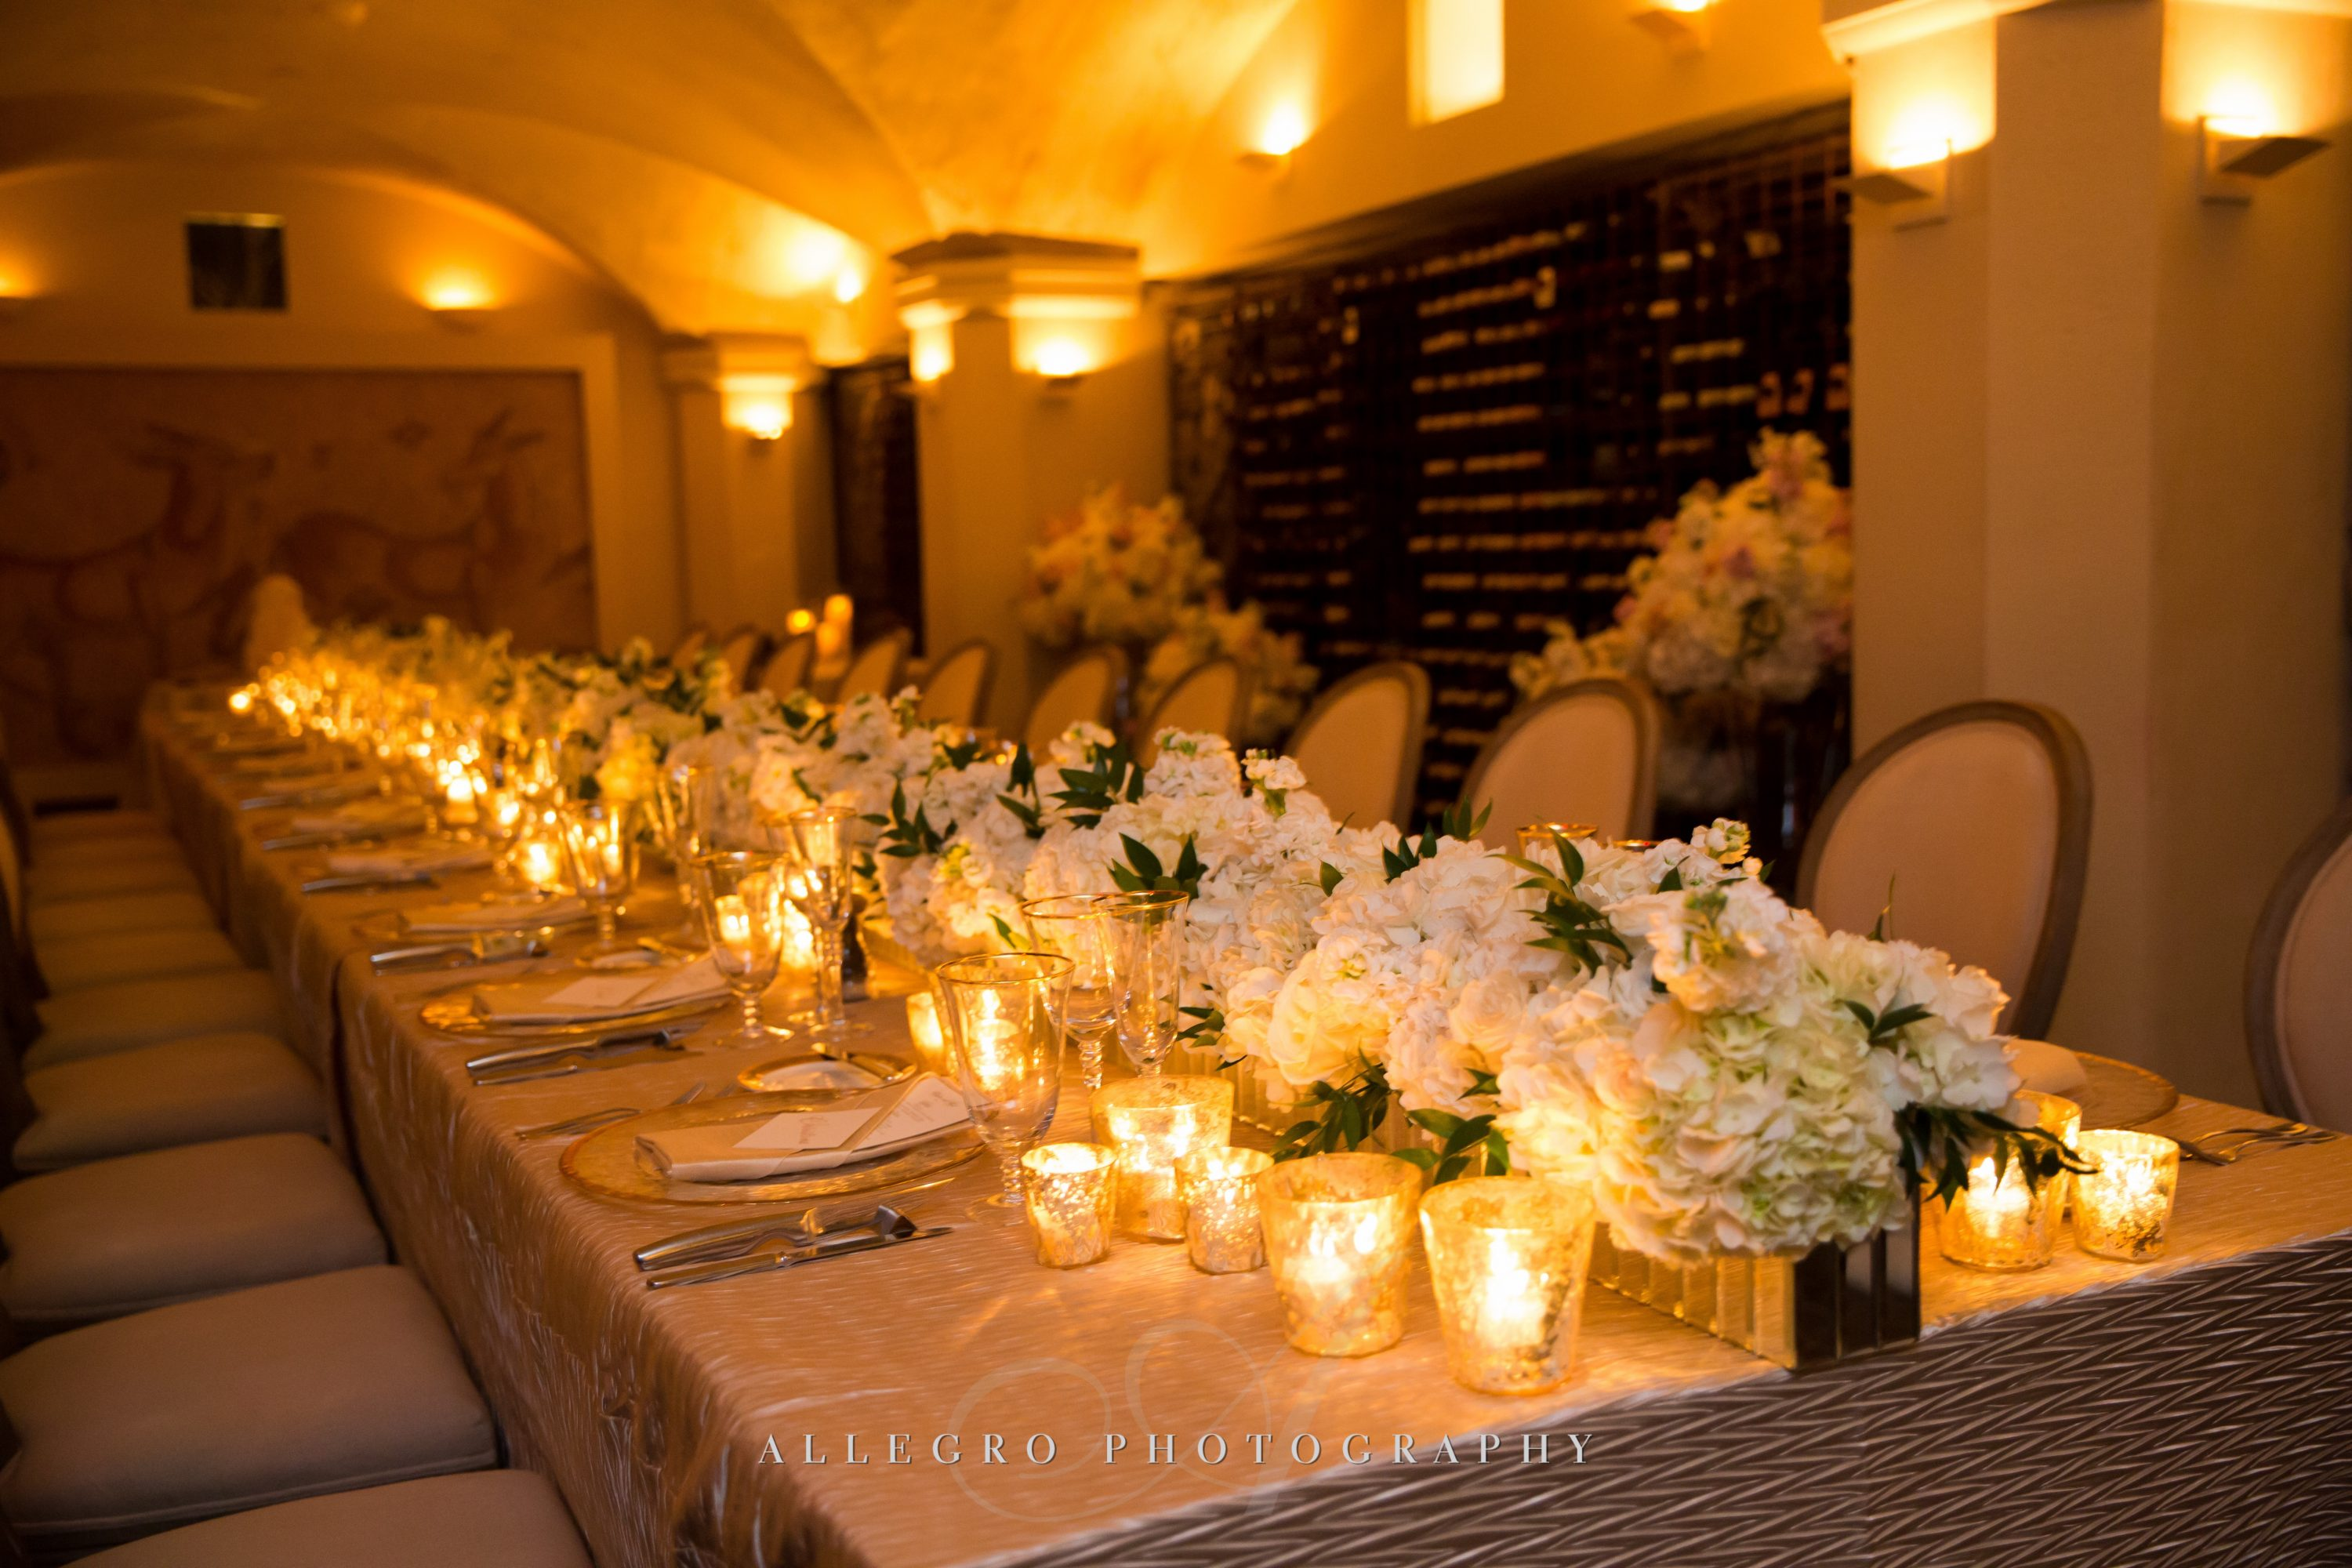 Flou(-e)r_Specialty_Floral_Events_Corporate_Event